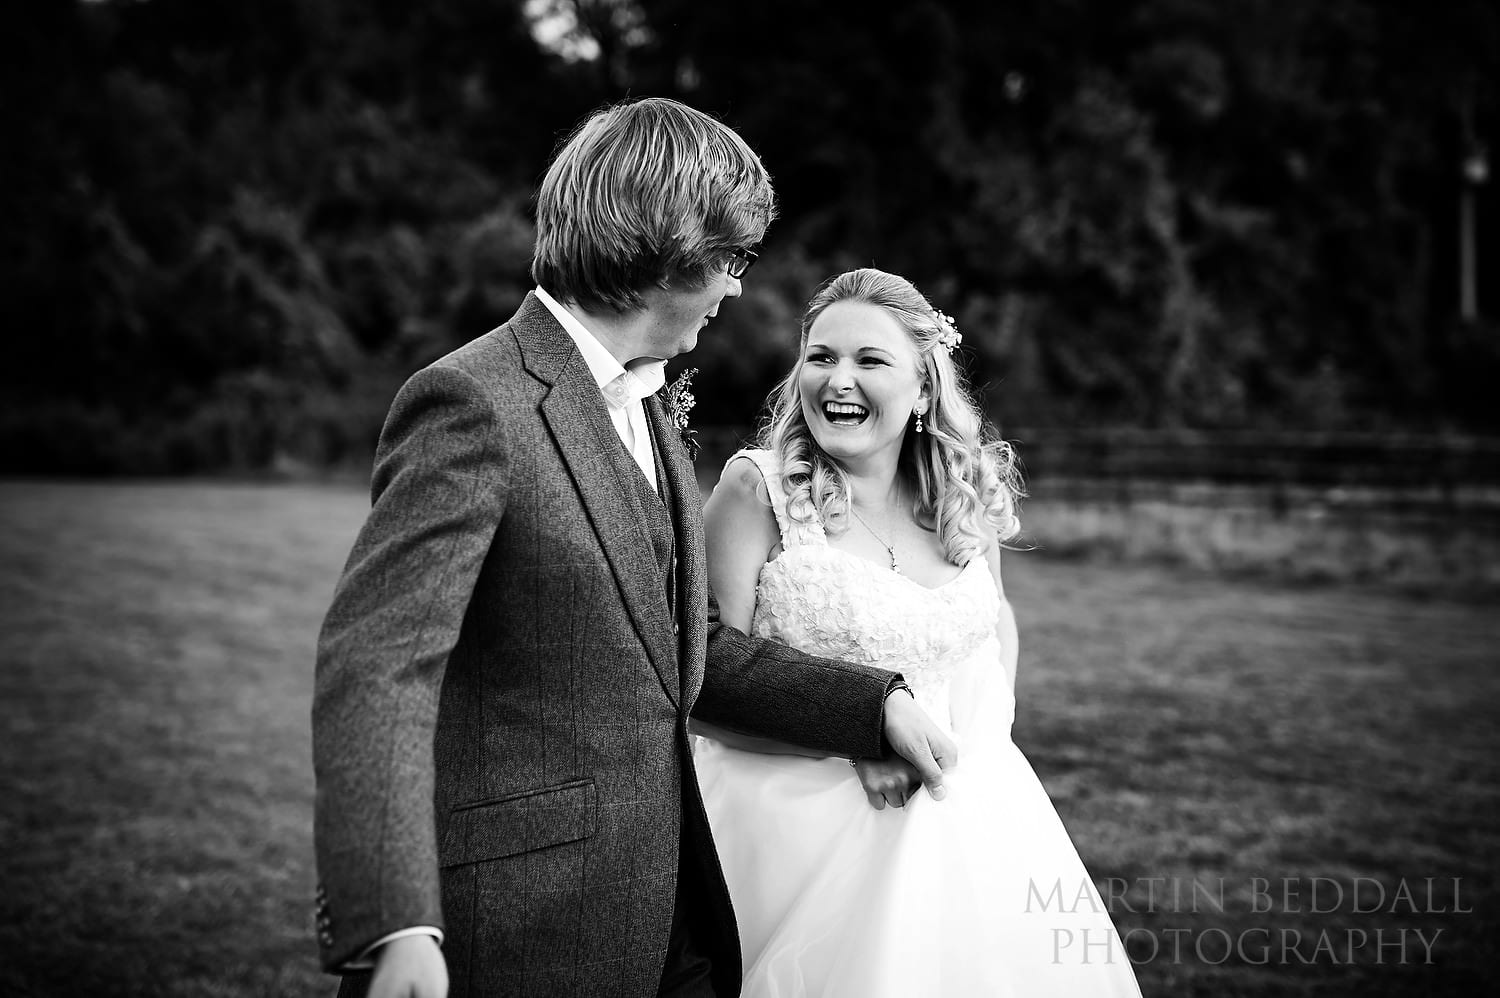 Natural portrait of the bride and groom at Lost Village of Dode wedding